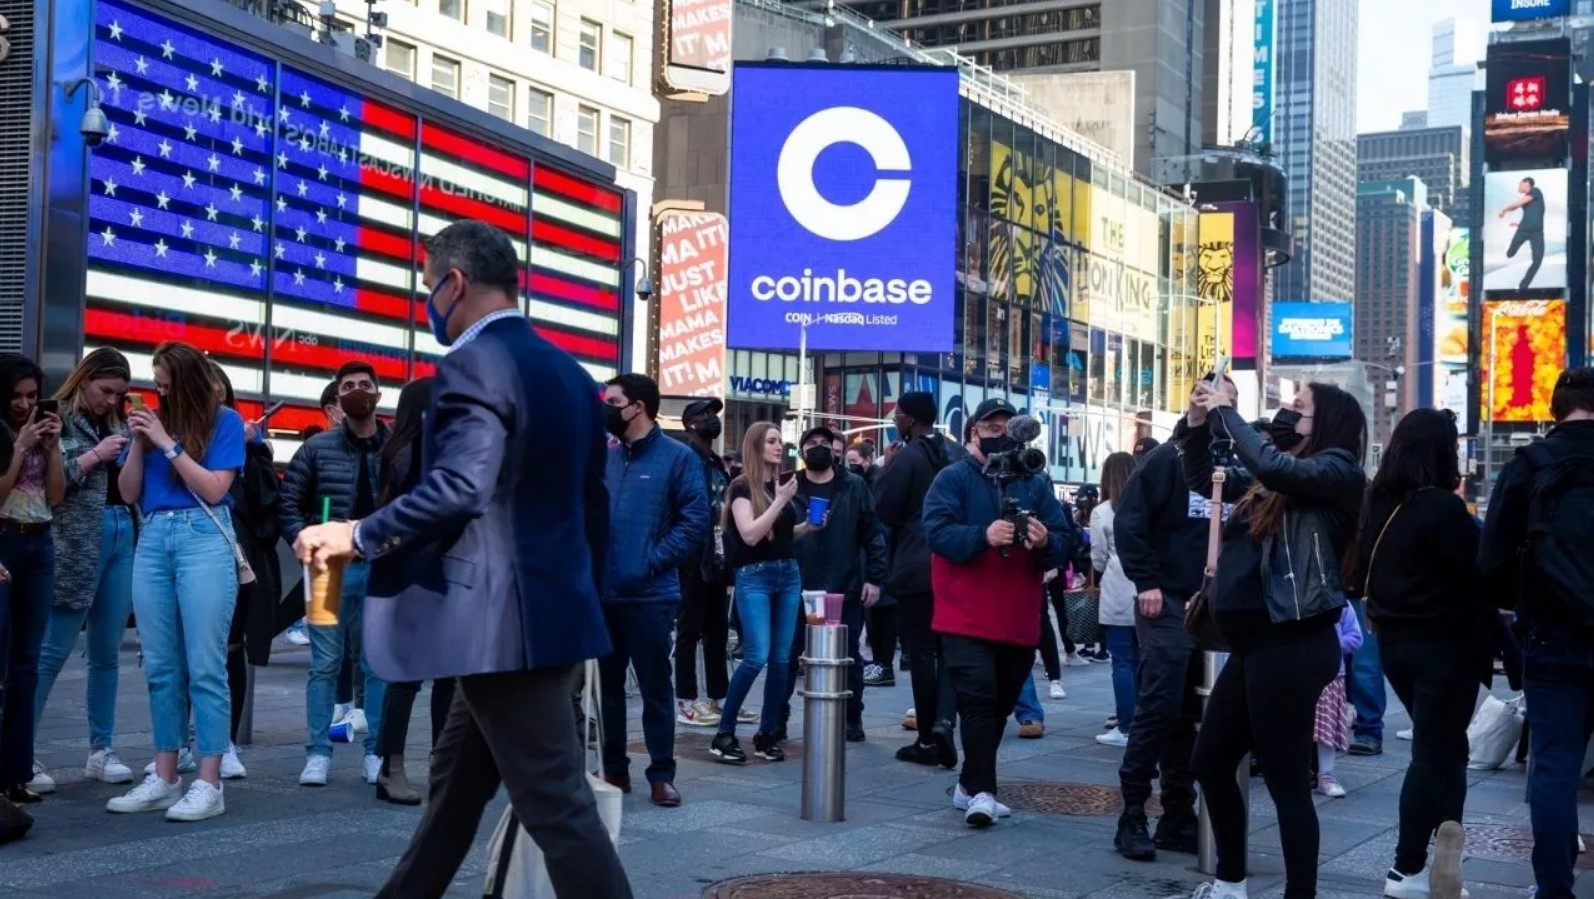 Coinbase advertisement in New York